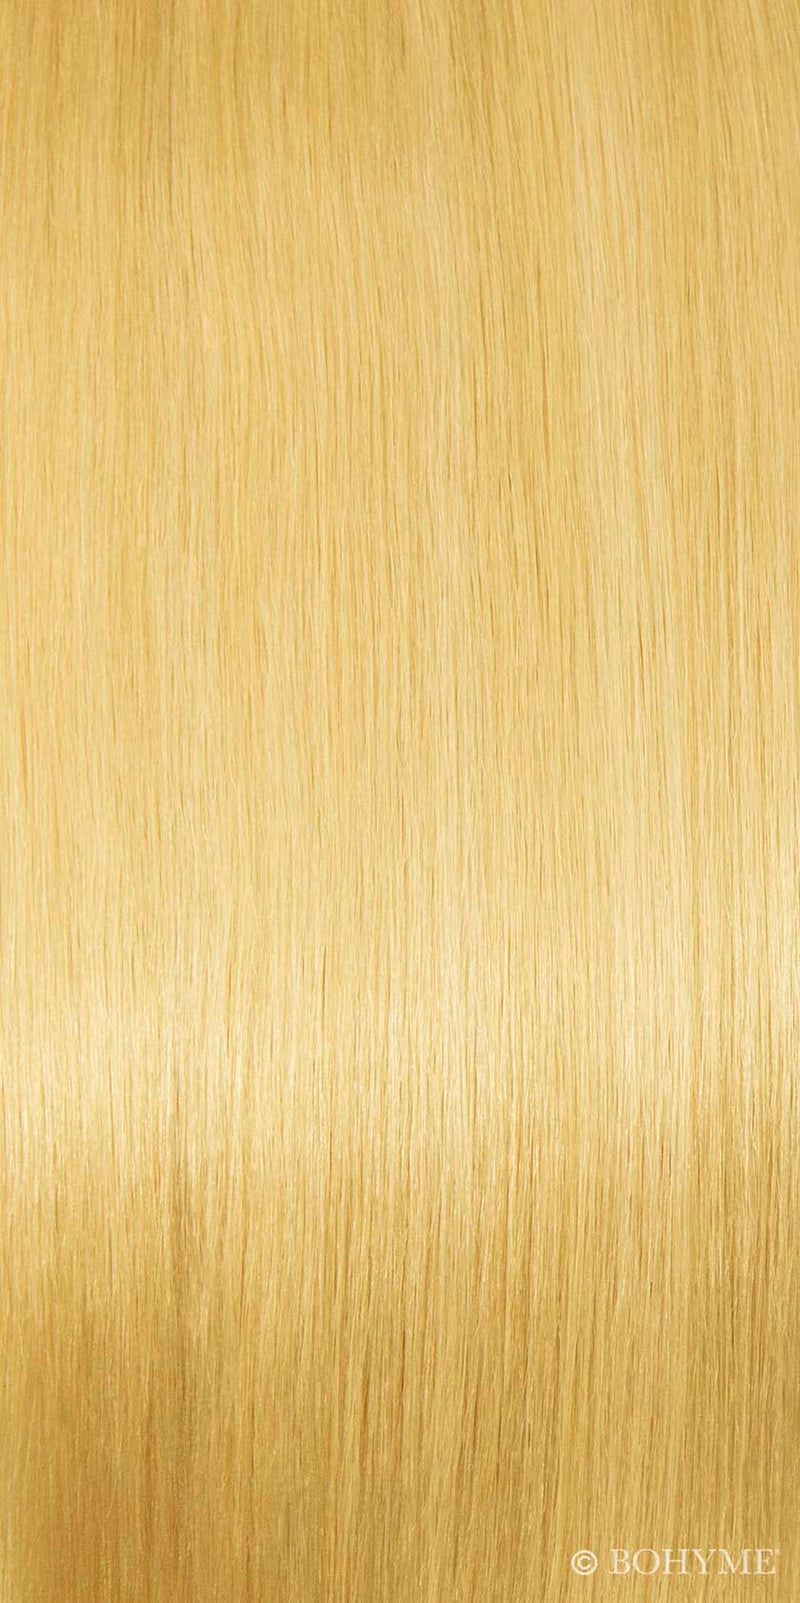 "Bohyme Classic Collection Ocean Breeze Remi 14"" Extensions"